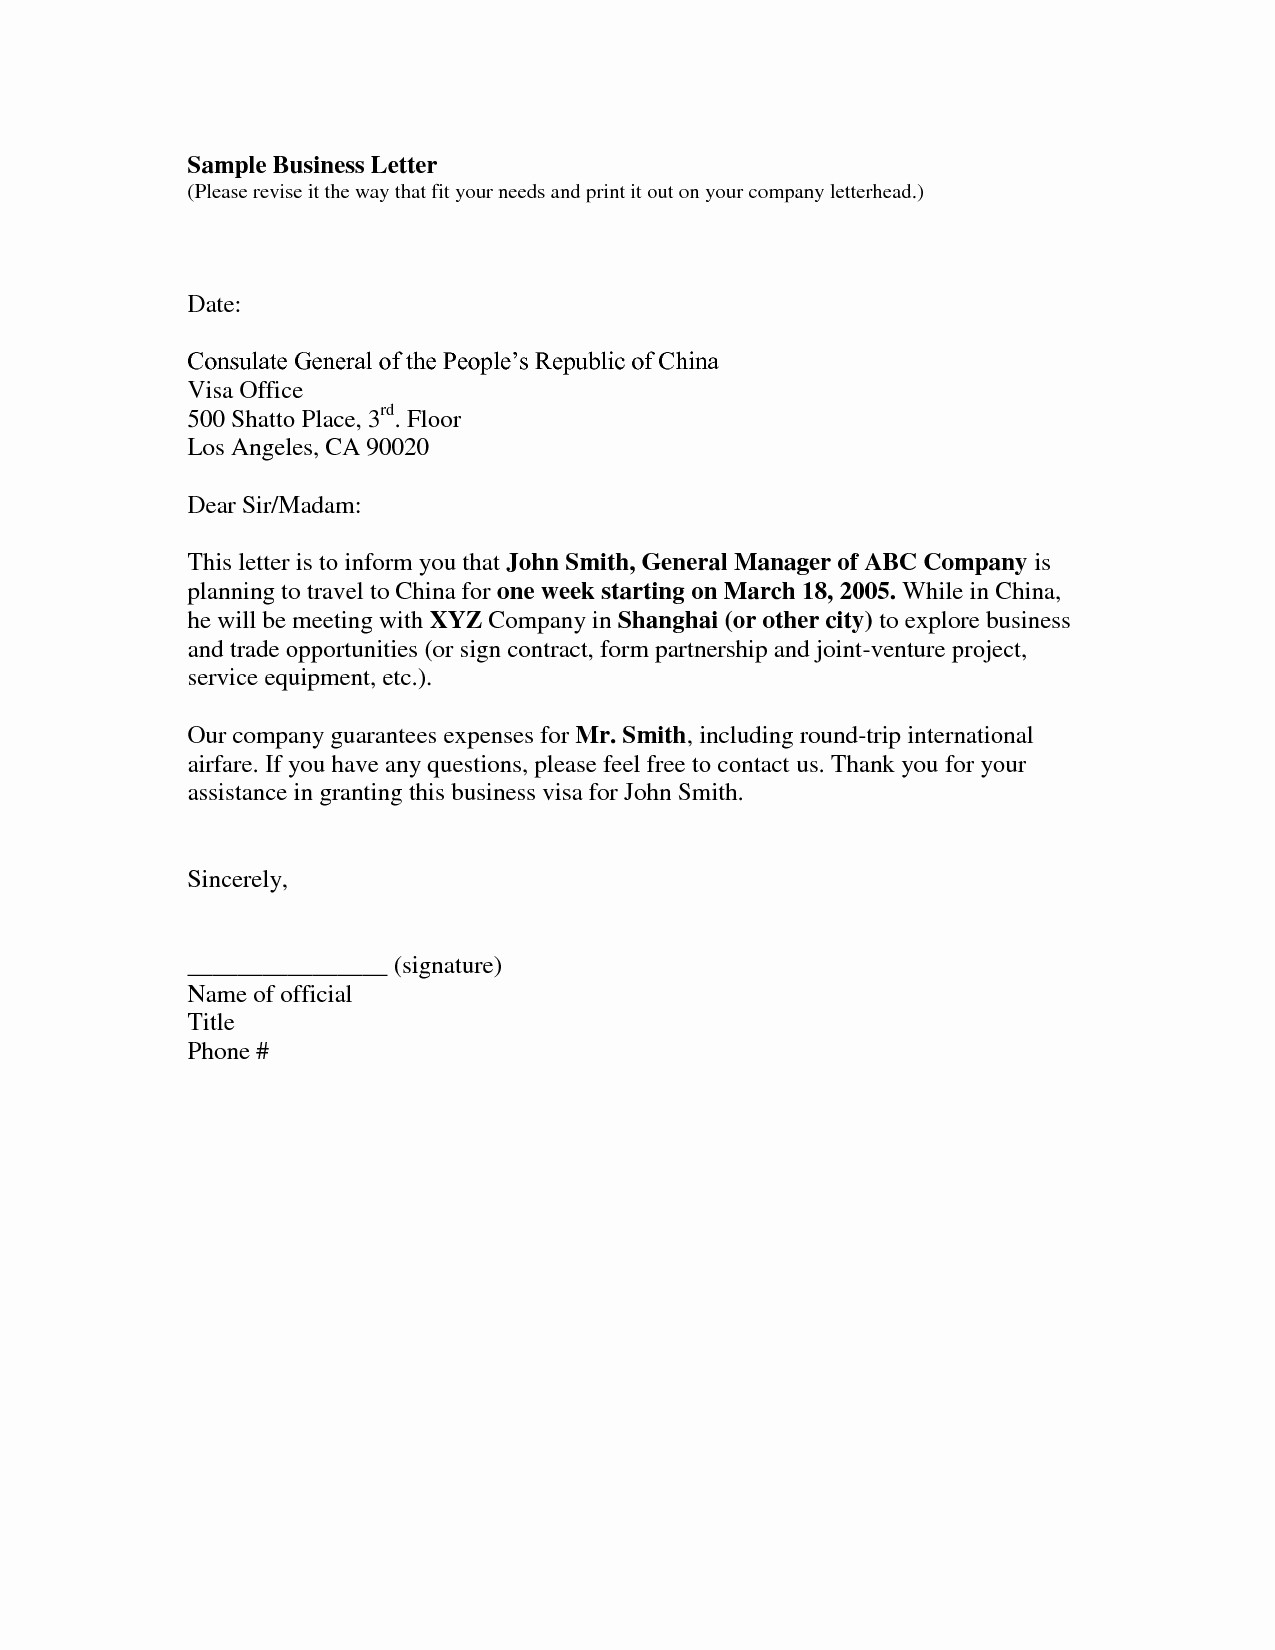 Free Download Business Letter Template Inspirational Amazing as Well as Gorgeous Business Letter Template